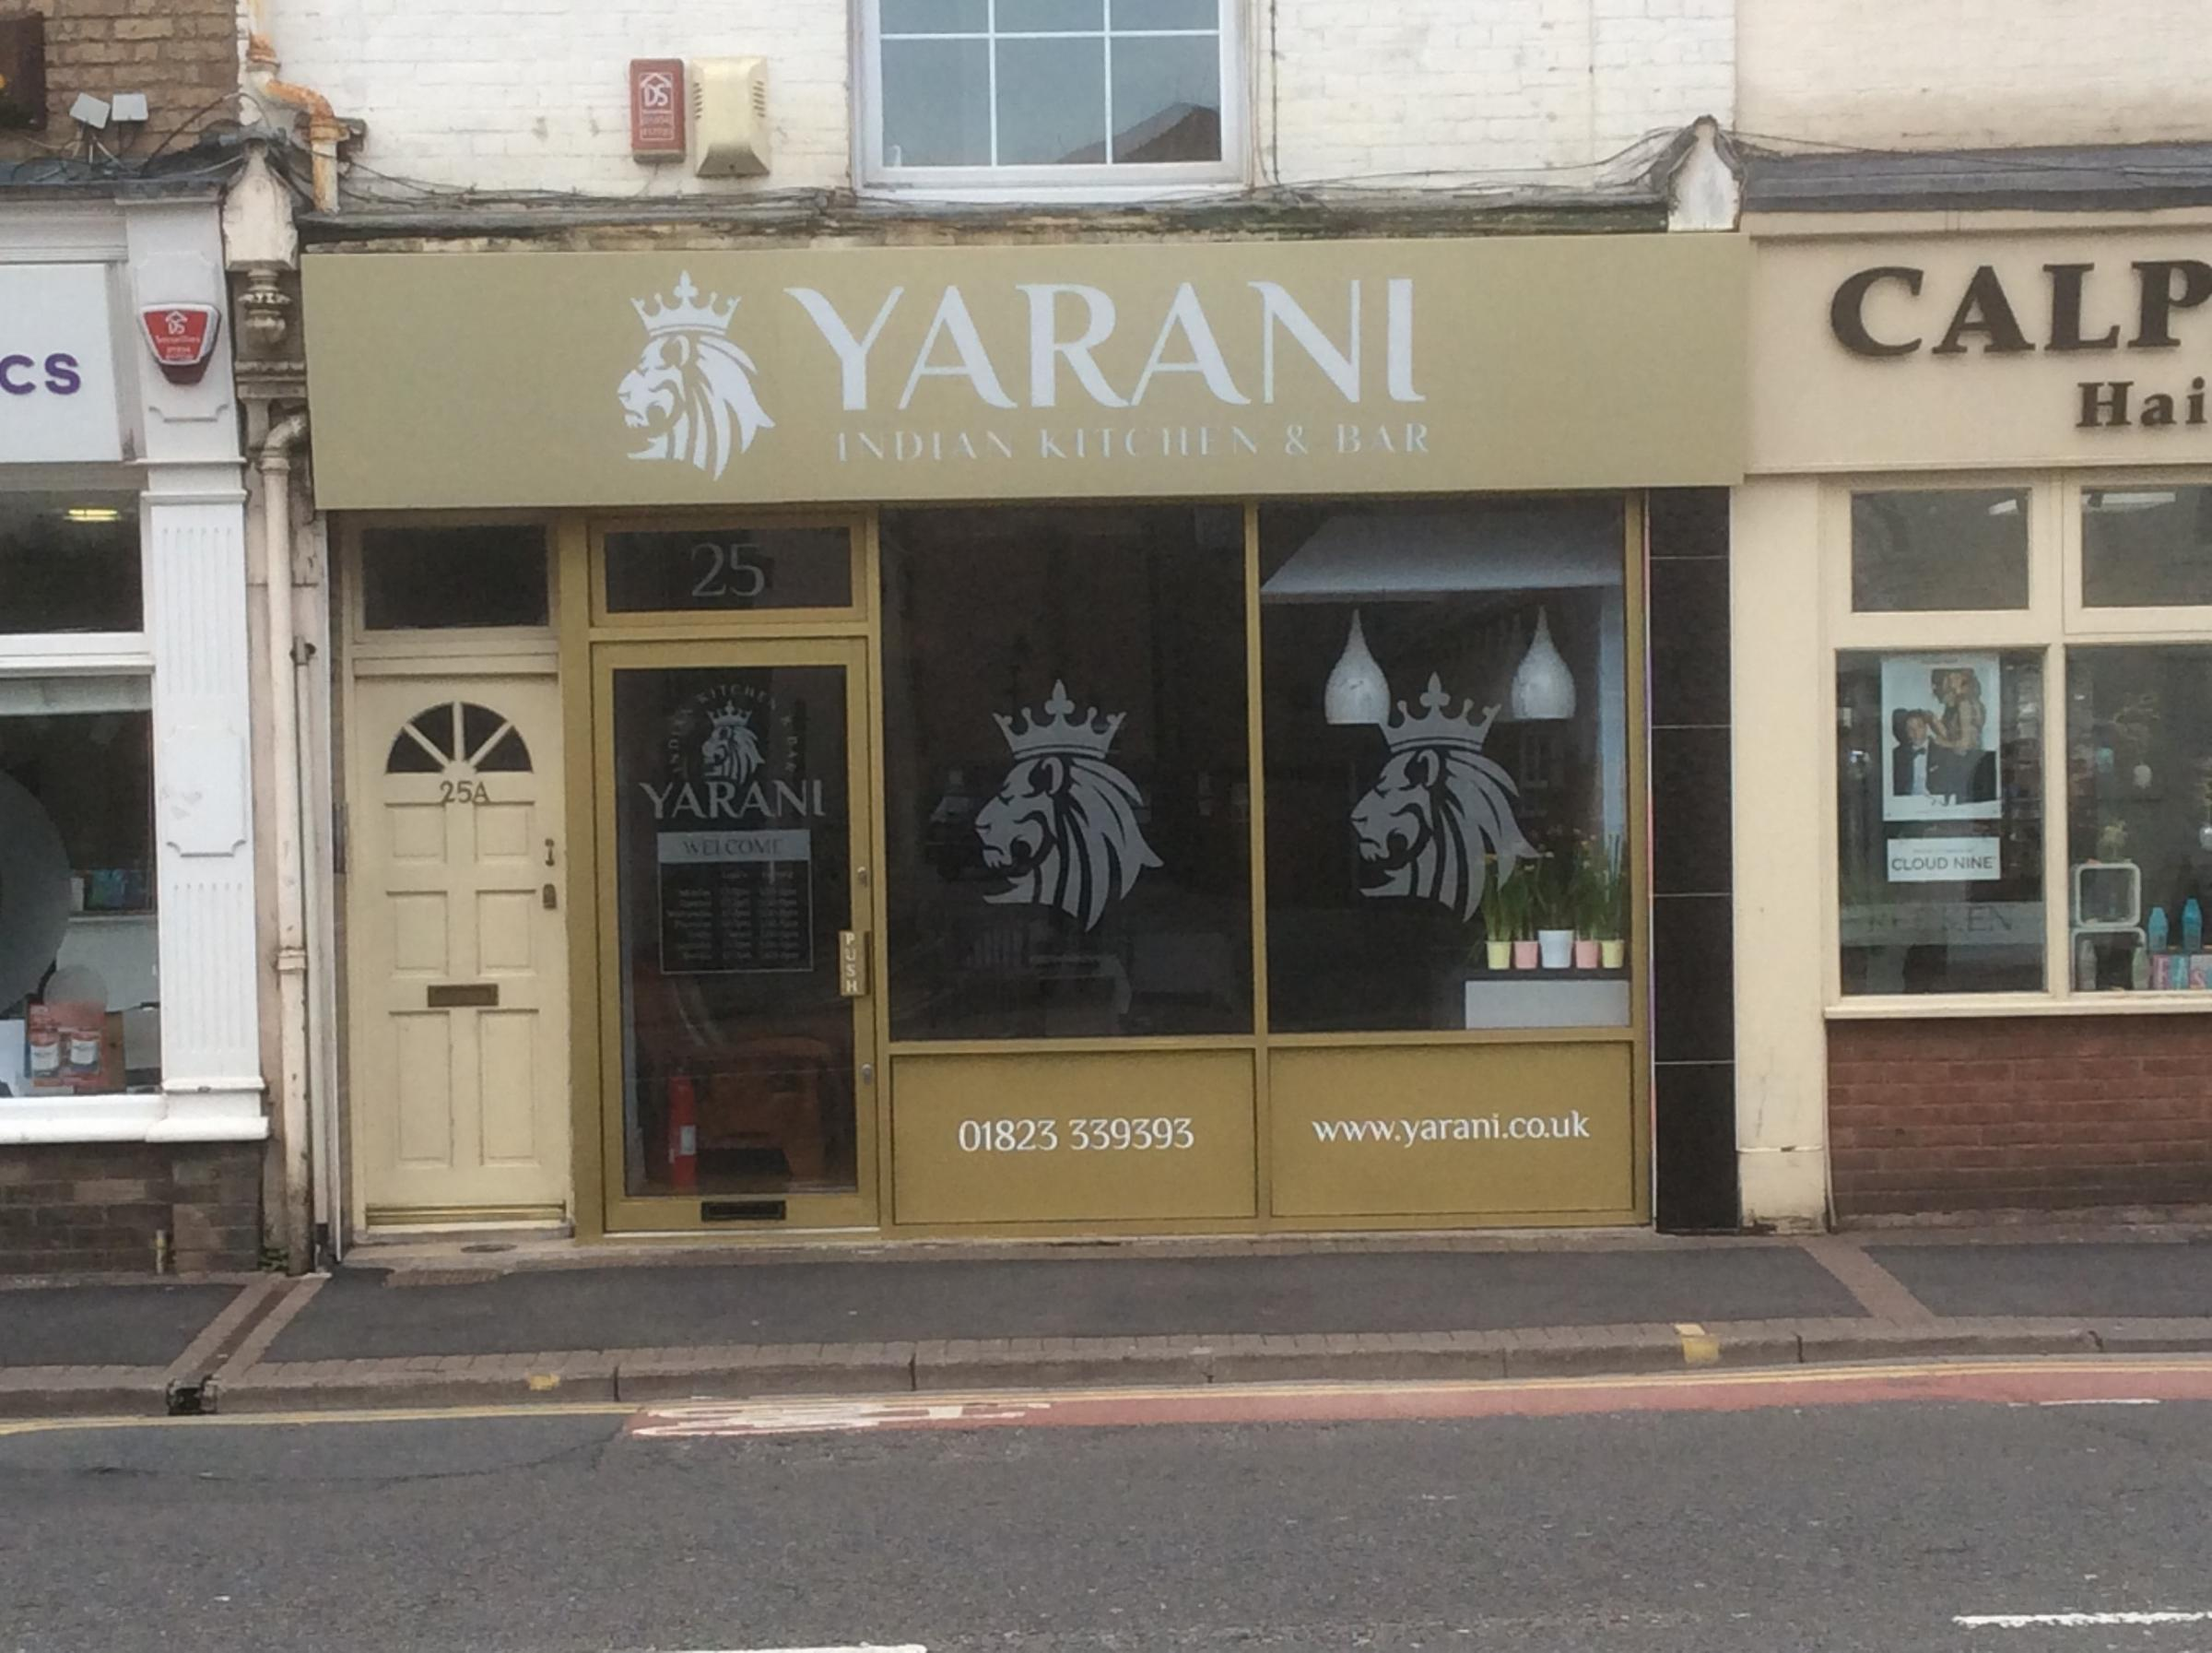 First look inside new restaurant opening in Taunton